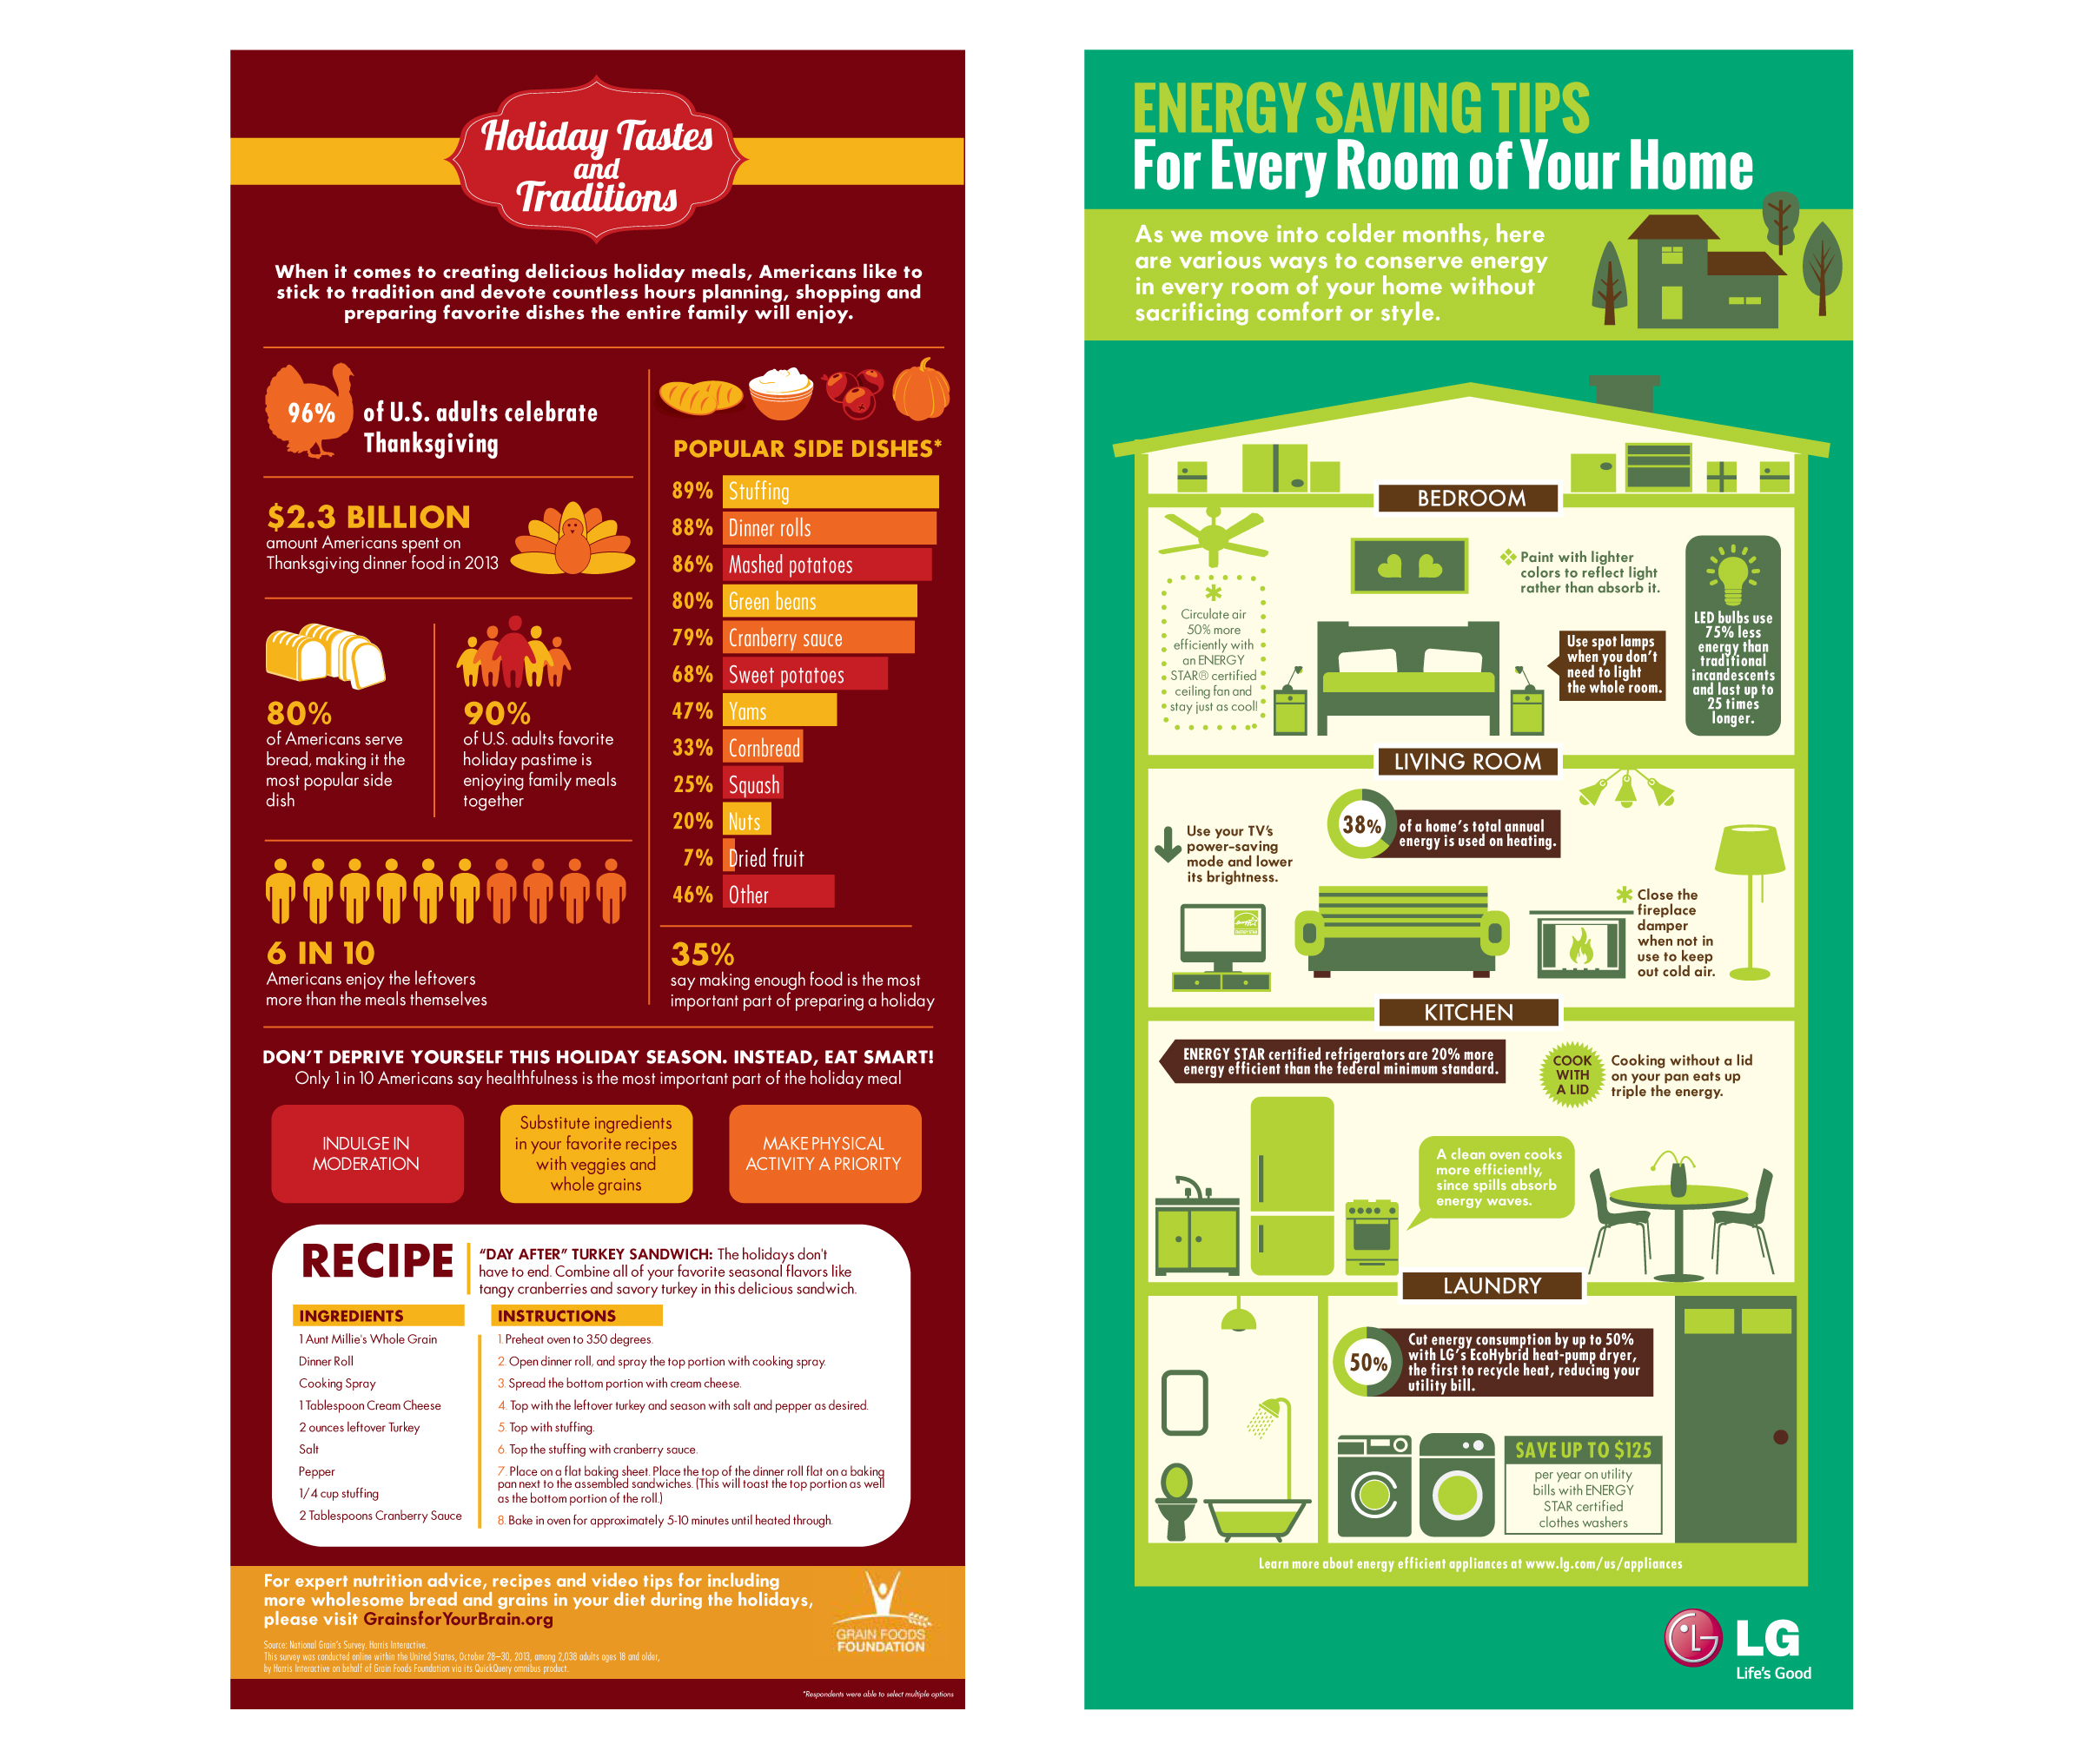 Life's Good LG Infographic by DreamBig Creative Minneapolis, MN